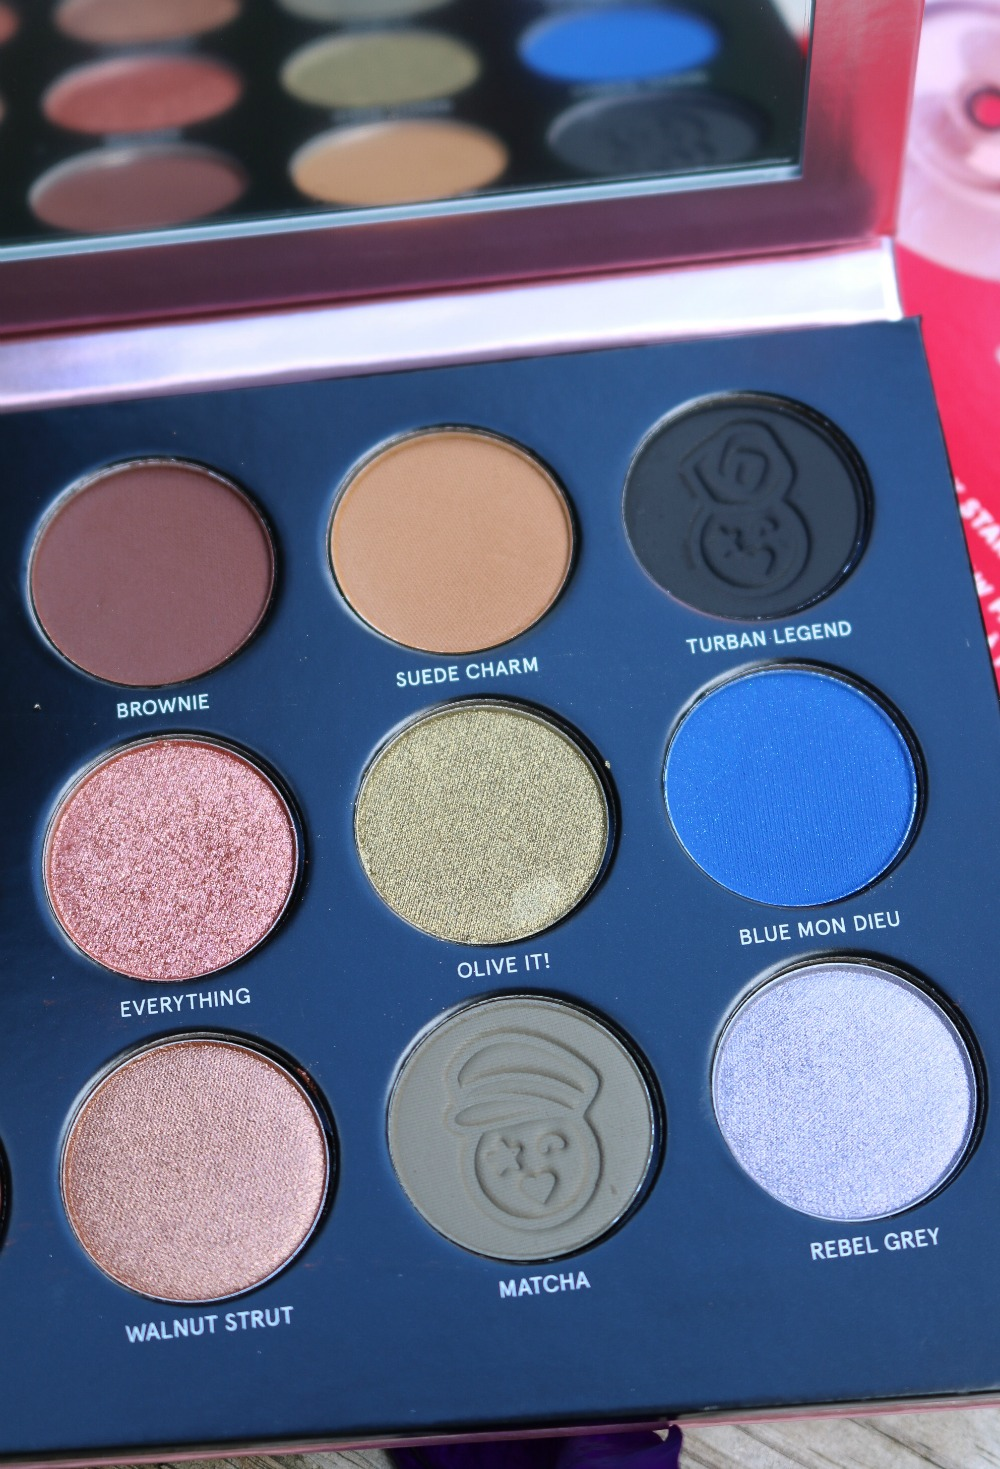 Patrick Starrr Visionary Eyeshadow Palette Review and Swatches I DreaminLace.com #MakeupBlog #CrueltyFree